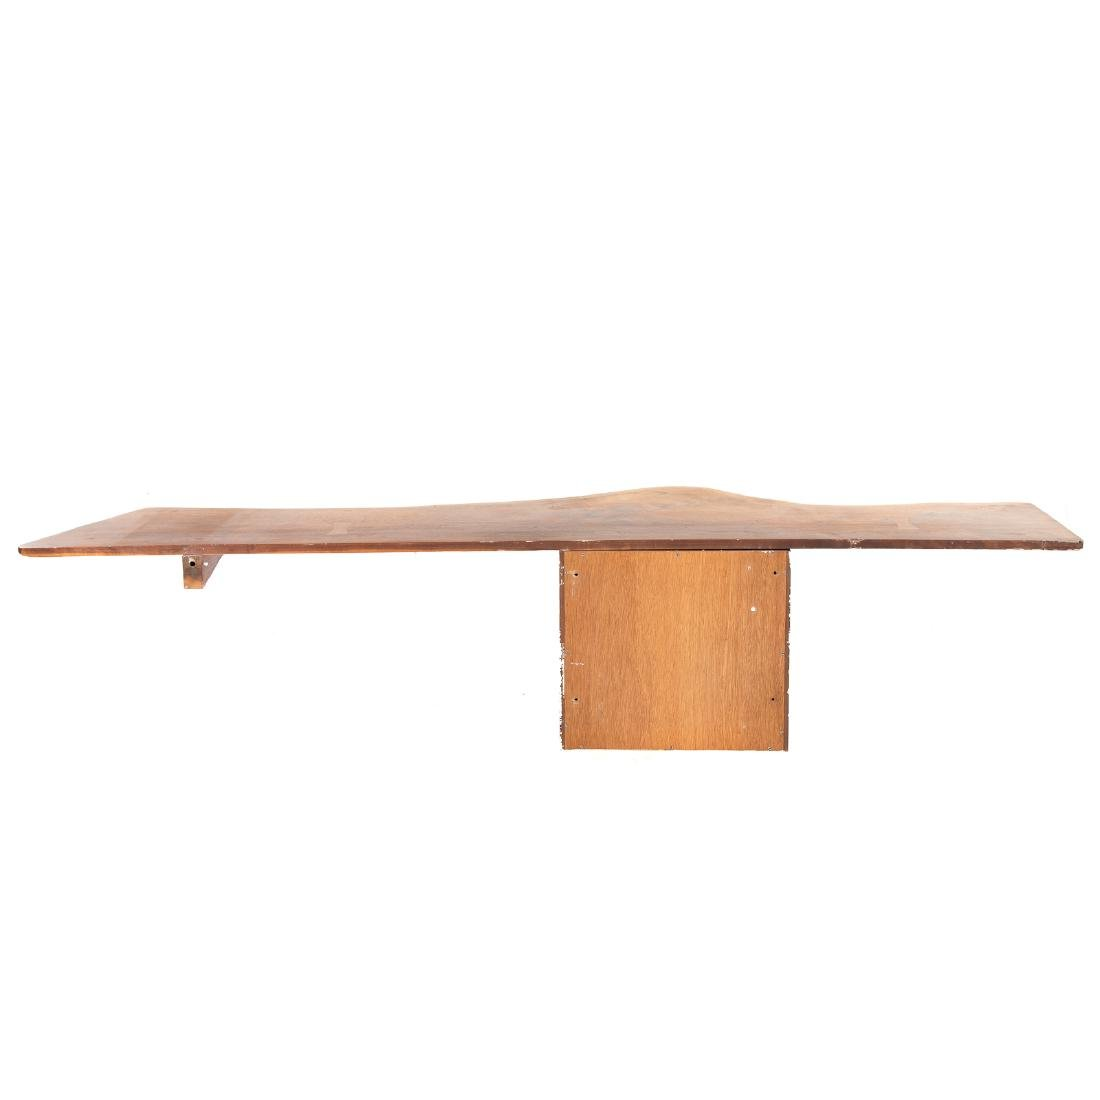 Phillip Lloyd Powell Wall-Mounted Desk and Shelves - 8